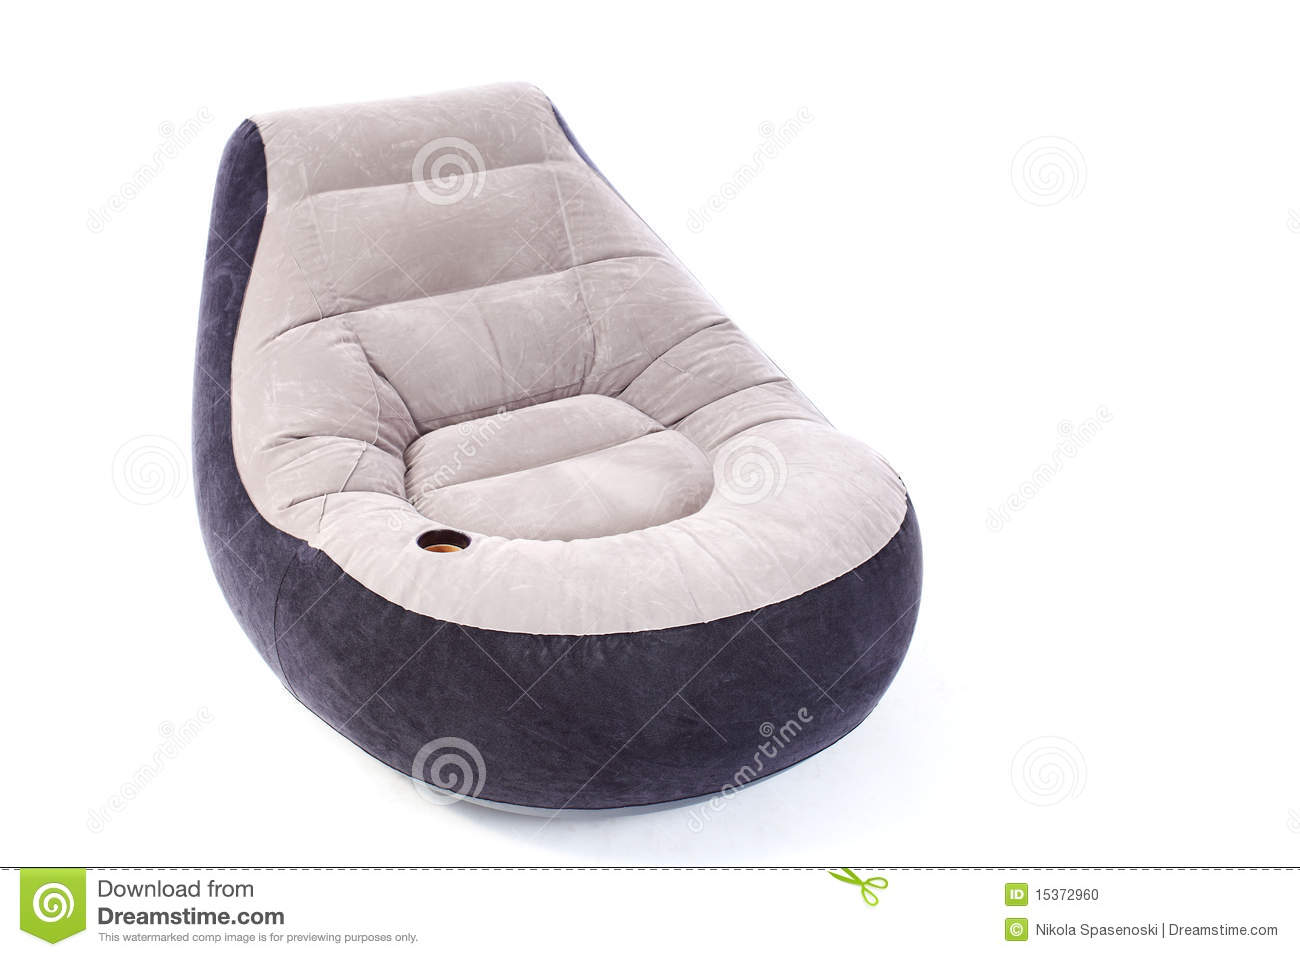 Inflatable armchair stock photo. Image of design, inside ...